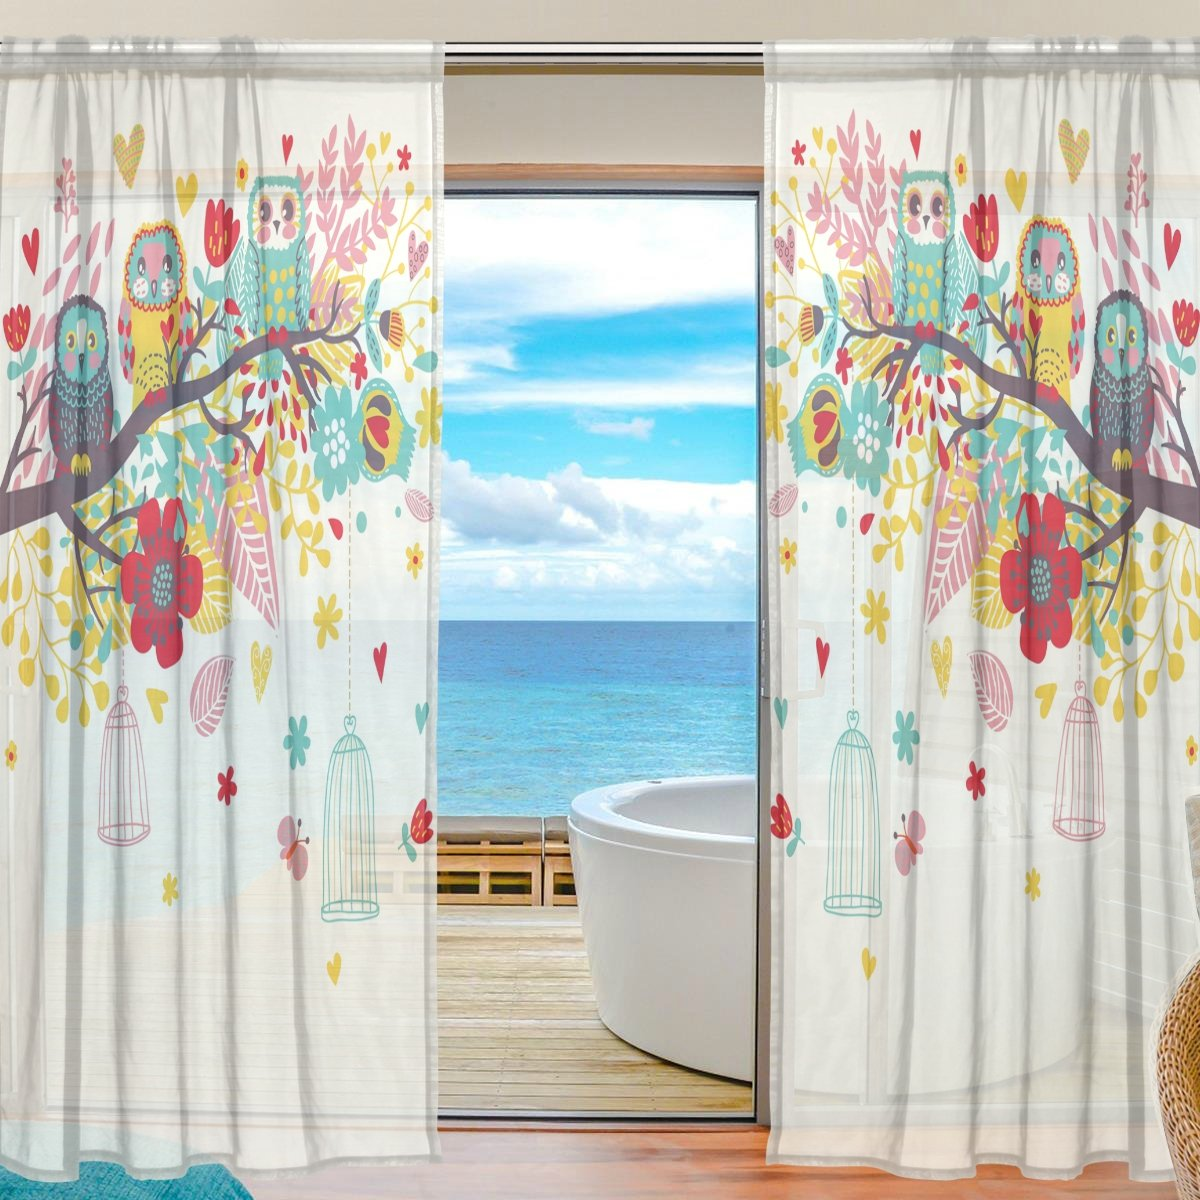 SEULIFE Window Sheer Curtain Animal Owl Tree Flower Voile Curtain Drapes for Door Kitchen Living Room Bedroom 55x78 inches 2 Panels g2413643p112c126s167